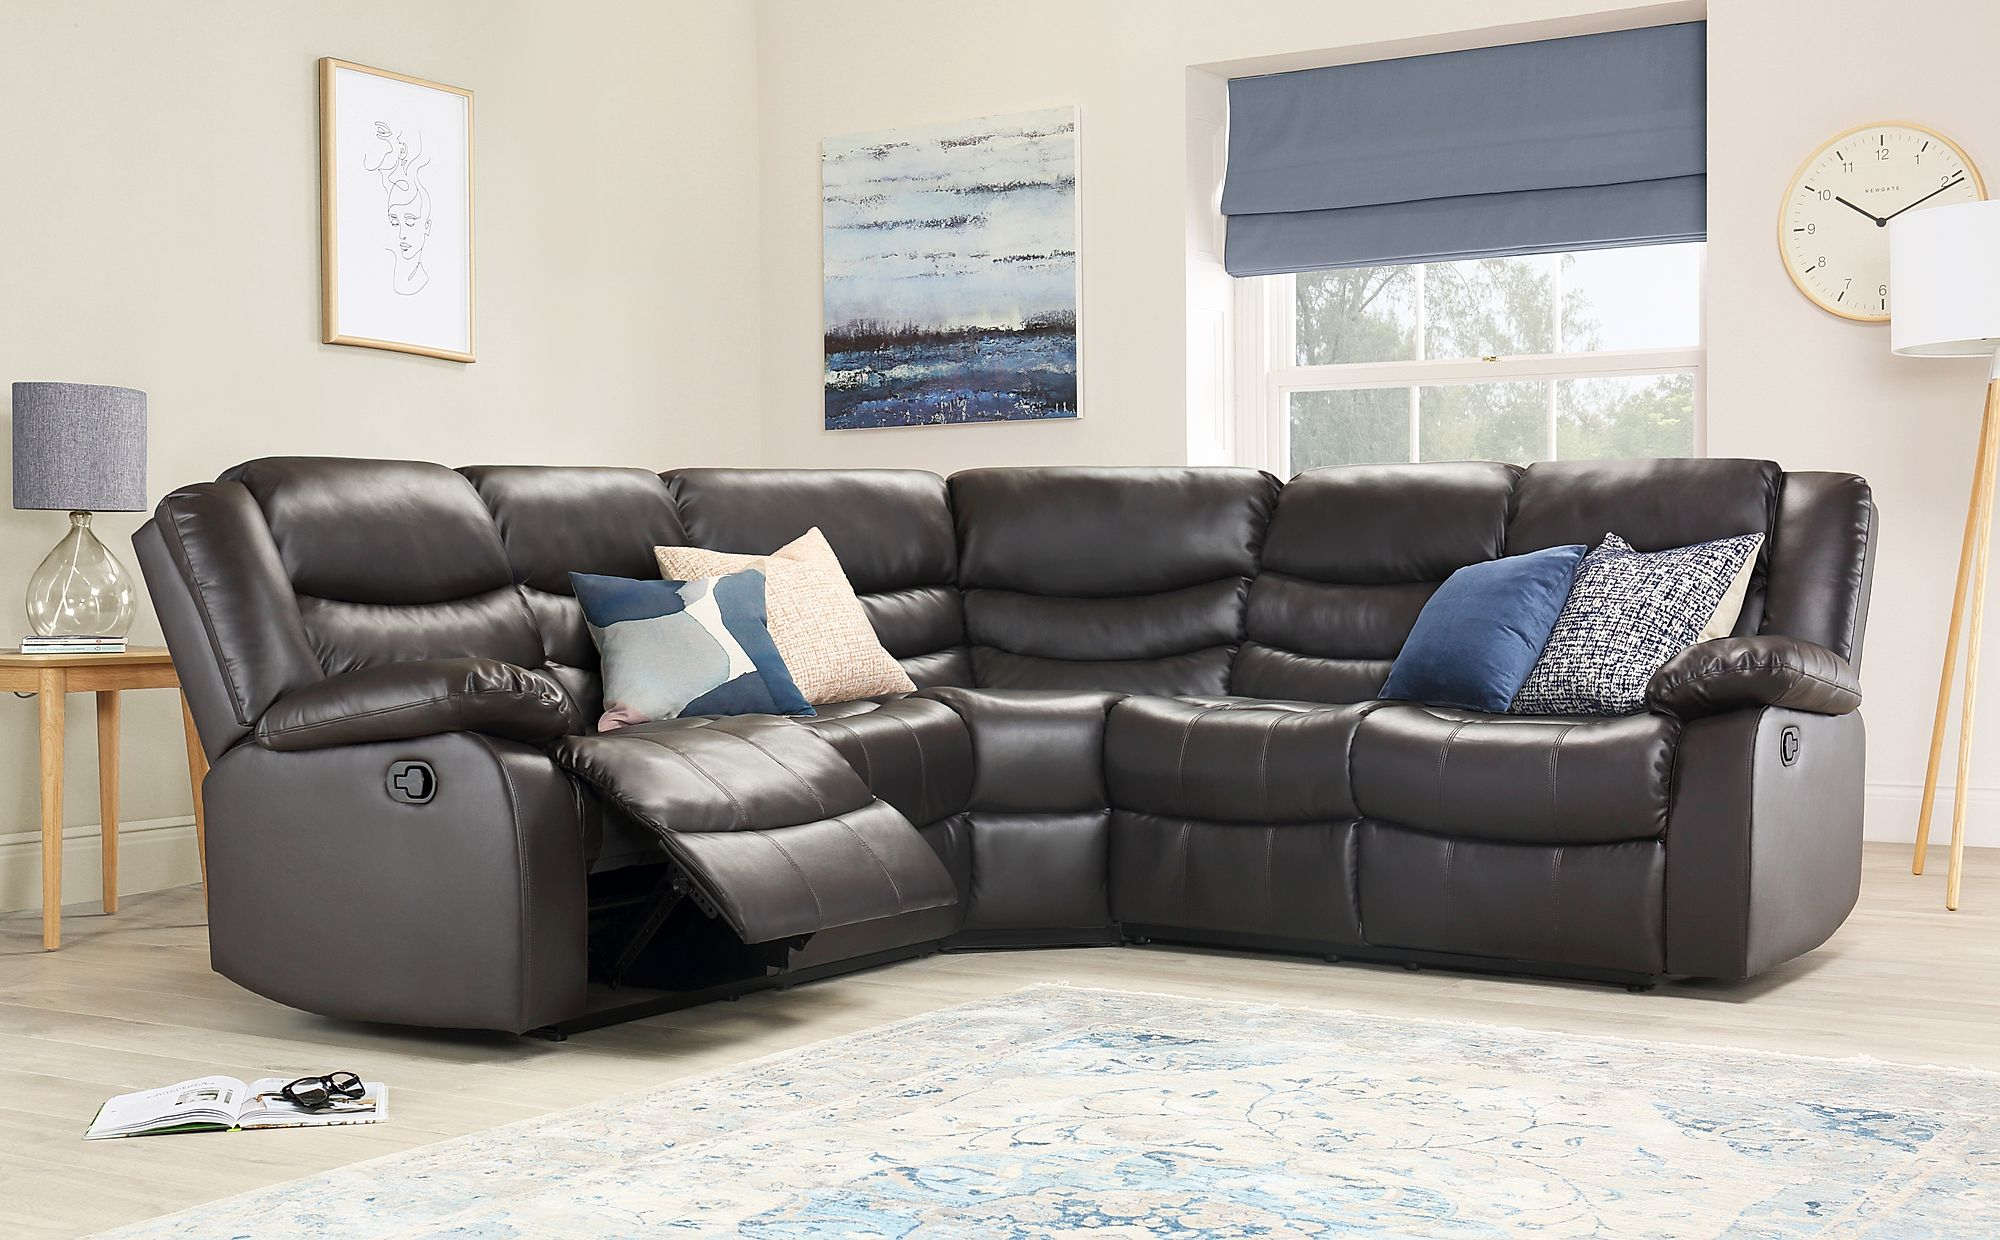 Sorrento Brown Leather Recliner Corner Sofa   Furniture Choice Inside Leather Corner Sofas (View 5 of 15)